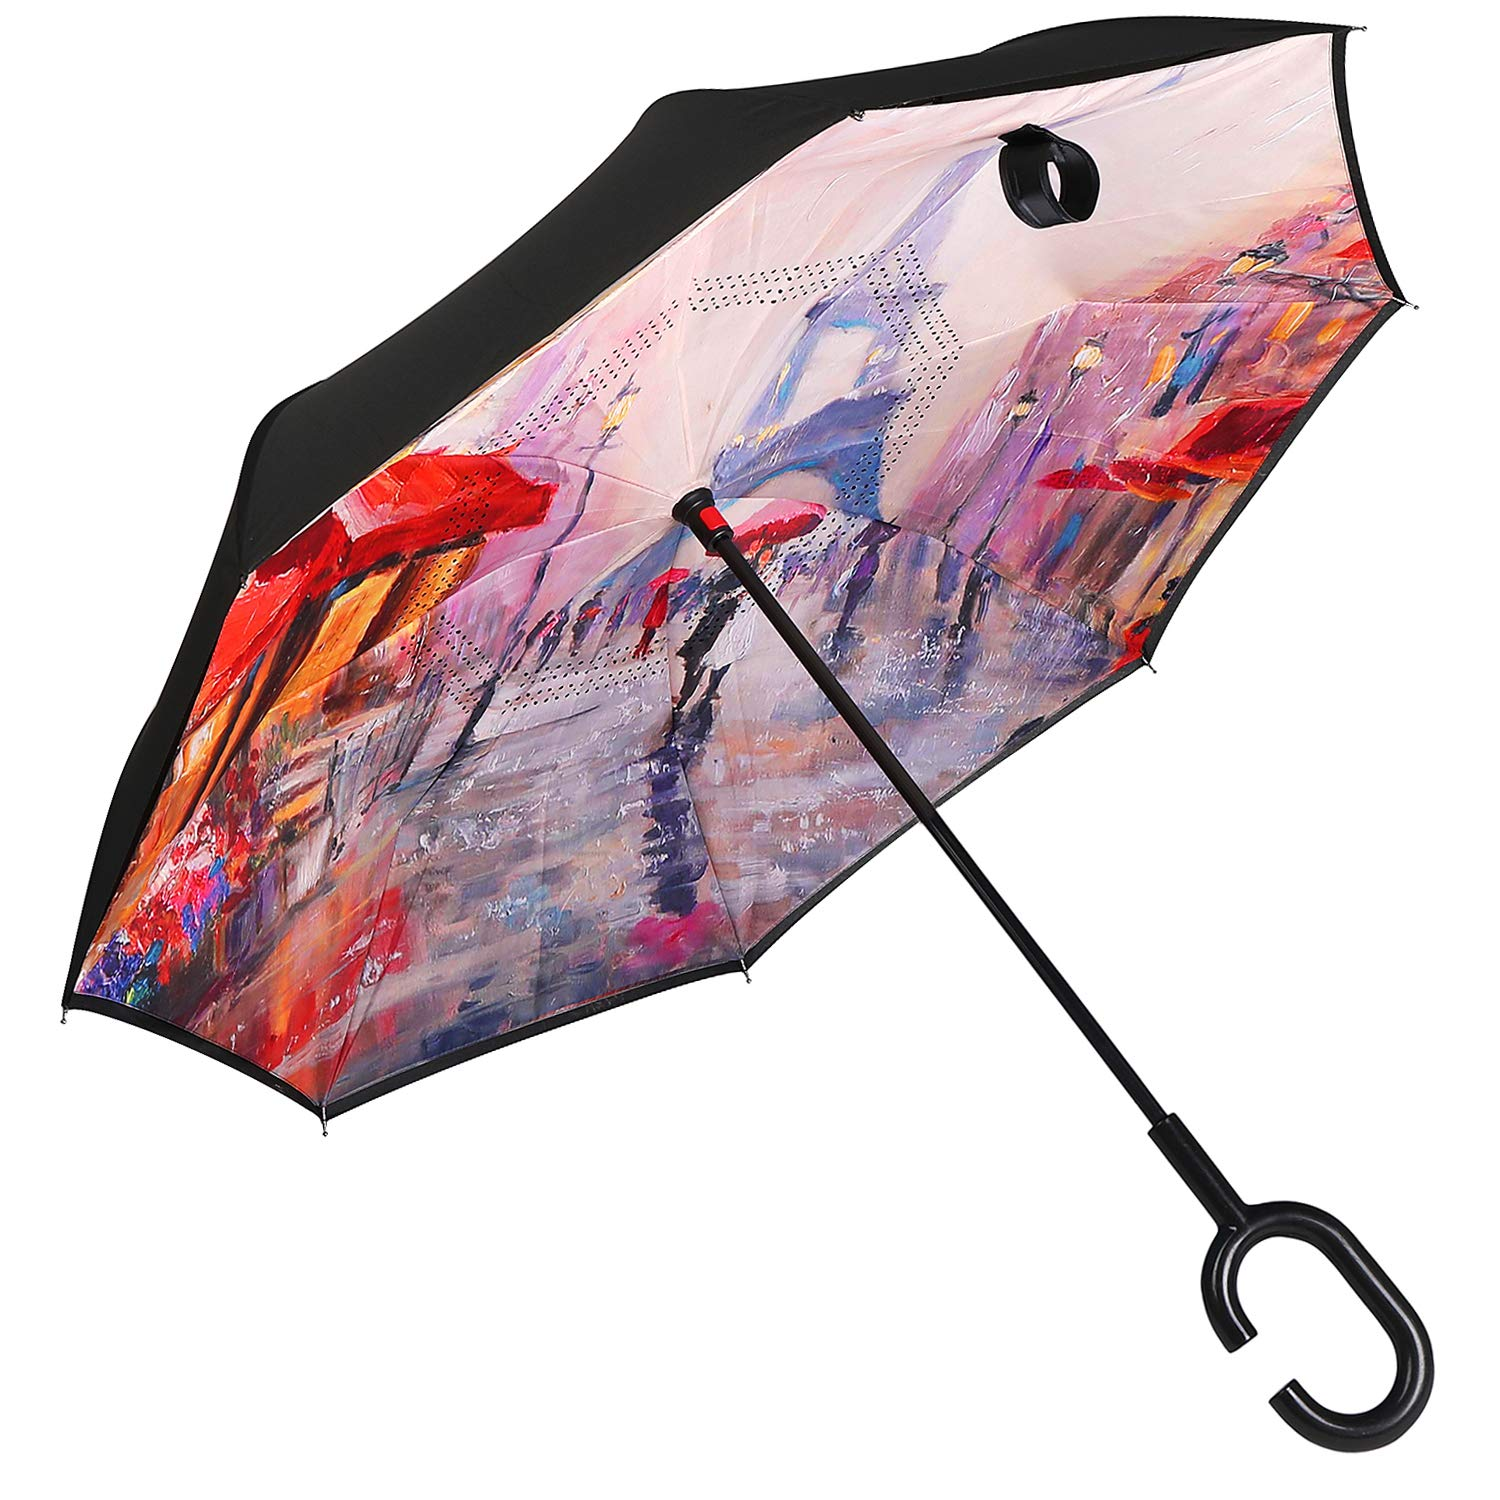 Owen Kyne Windproof Double Layer Folding Inverted Umbrella, Self Stand Upside-Down Rain Protection Car Reverse Umbrellas with C-Shaped Handle (Rain Tower) by Owen Kyne